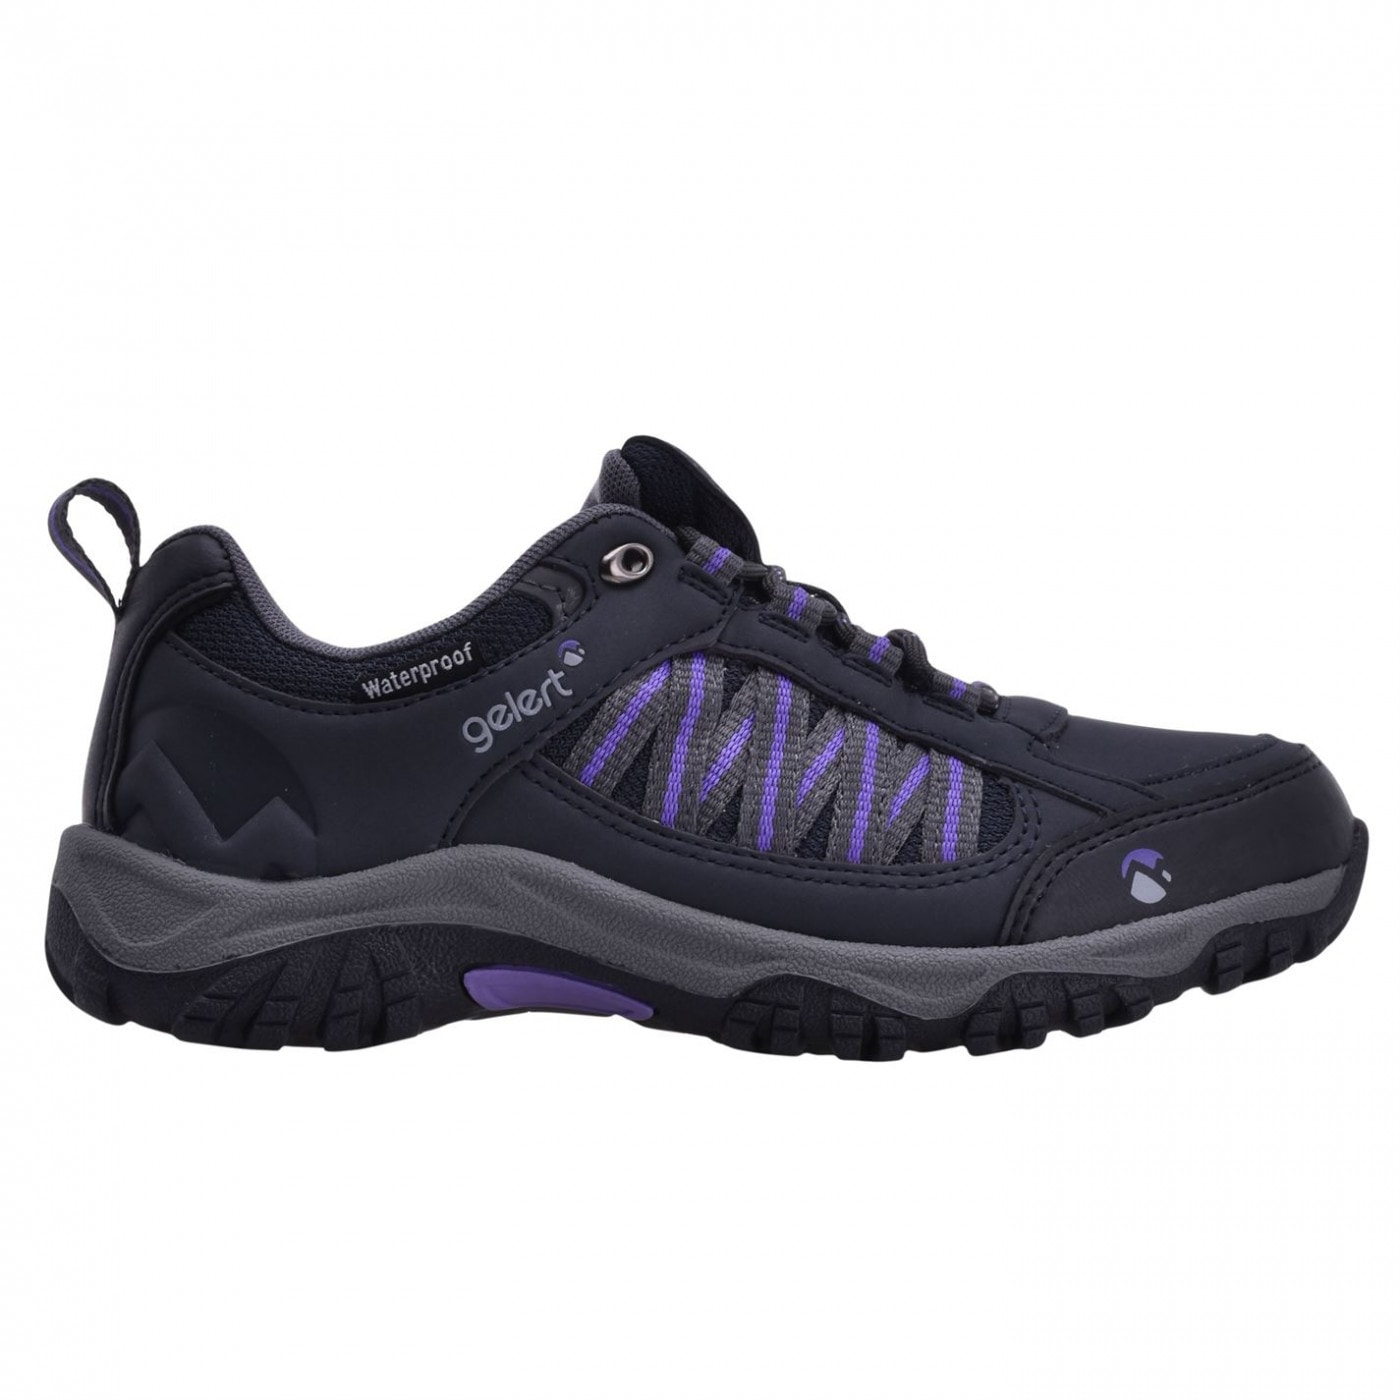 Women's walking shoes Gelert 18741826